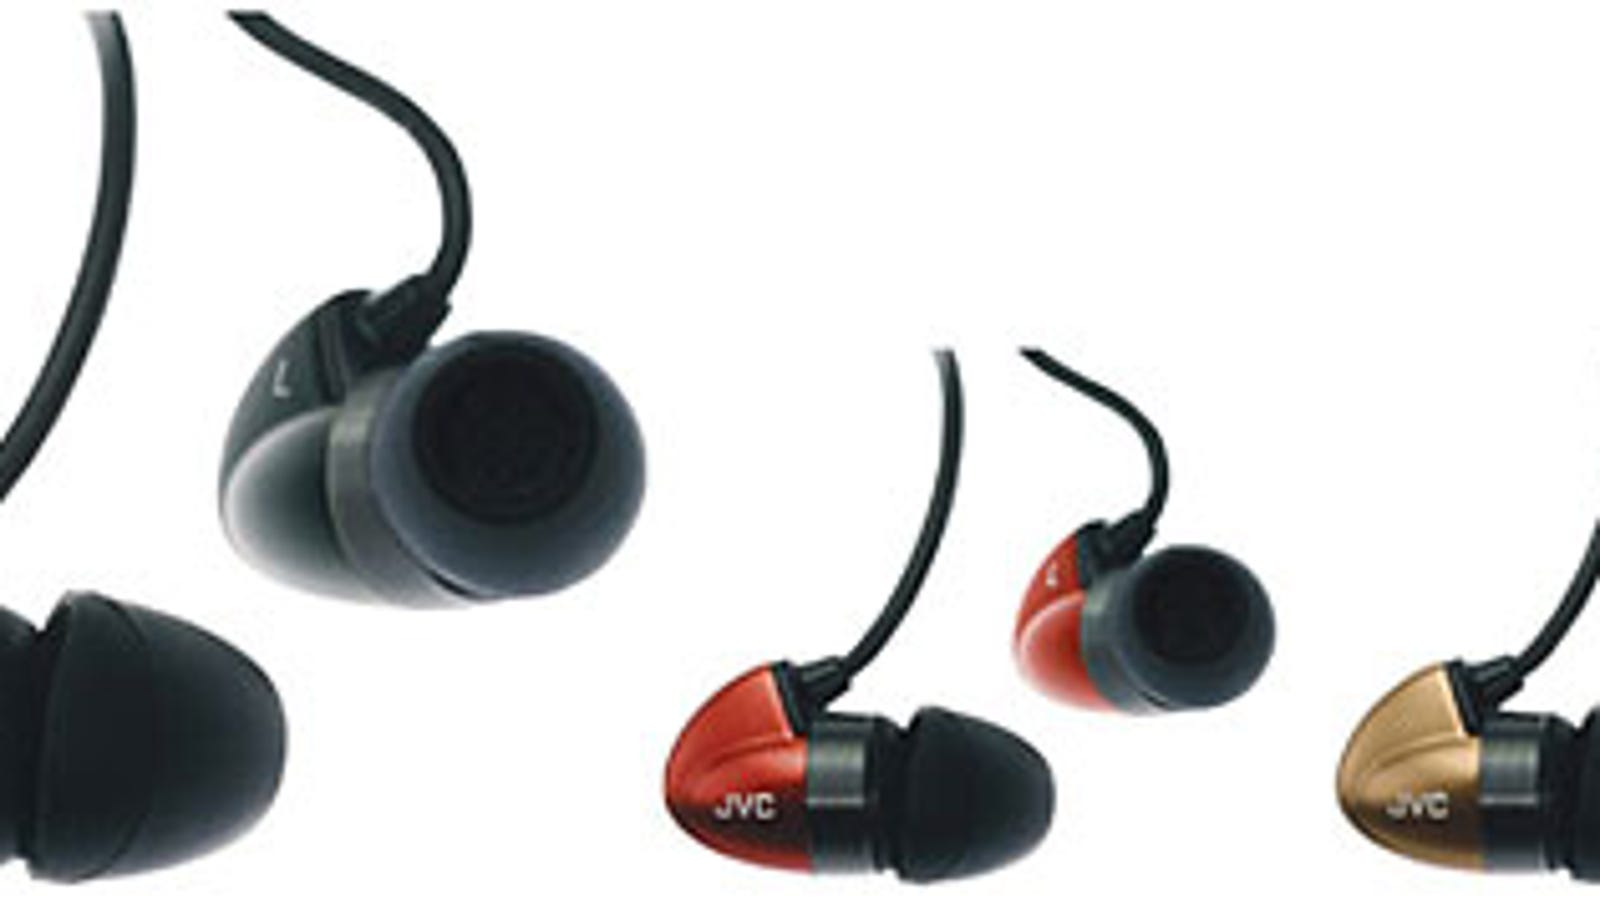 ear buds togo assortment - JVC Moves Upmarket with Fancy HA-FX300 Earphones